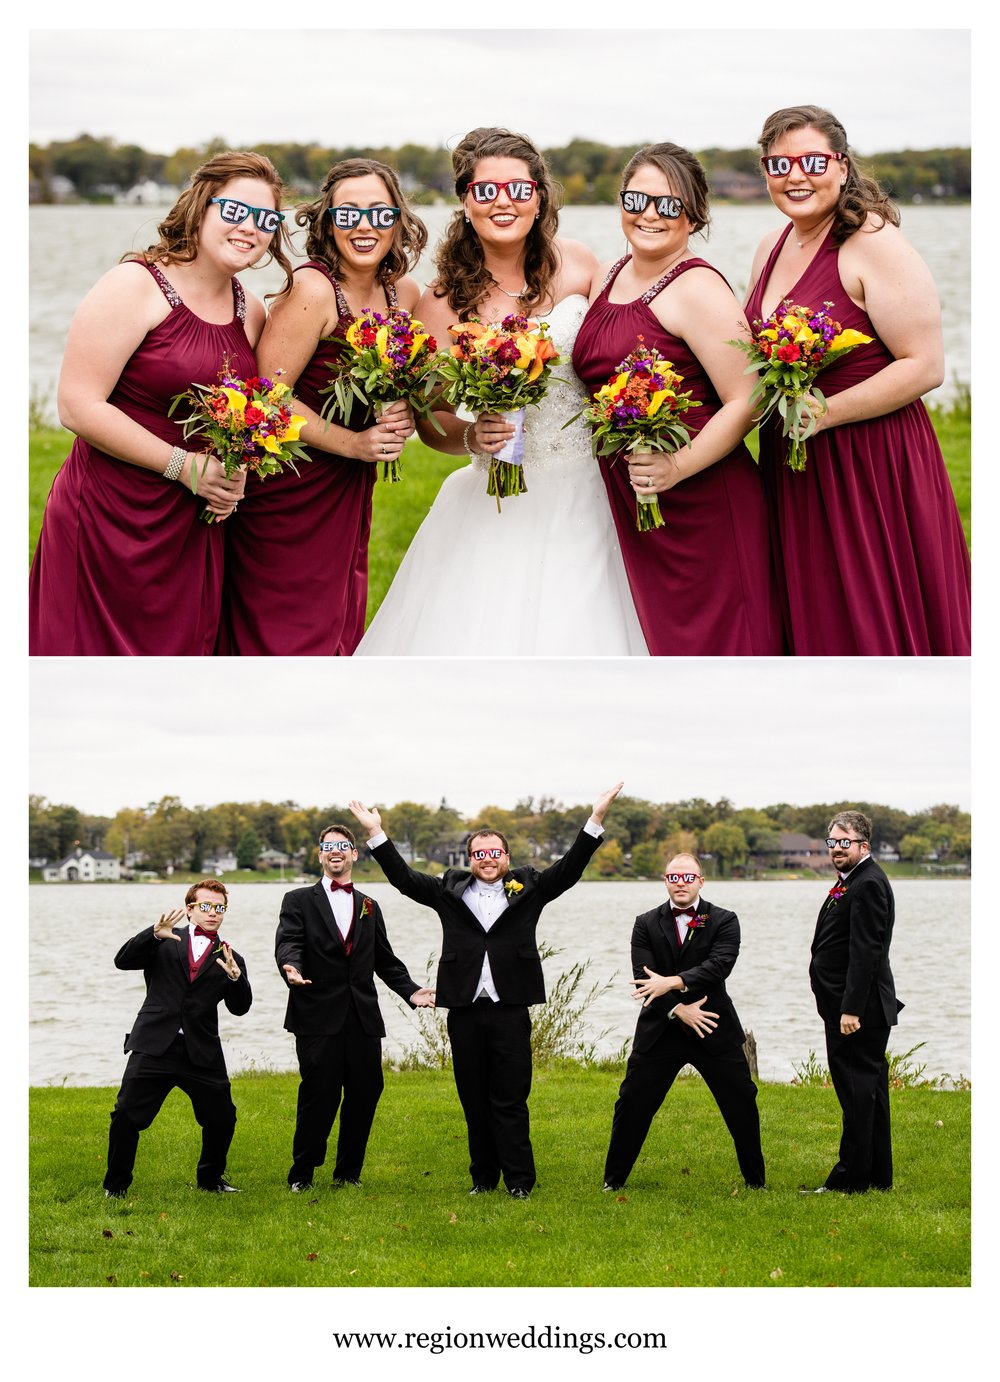 Fun wedding party photos with sunglasses.